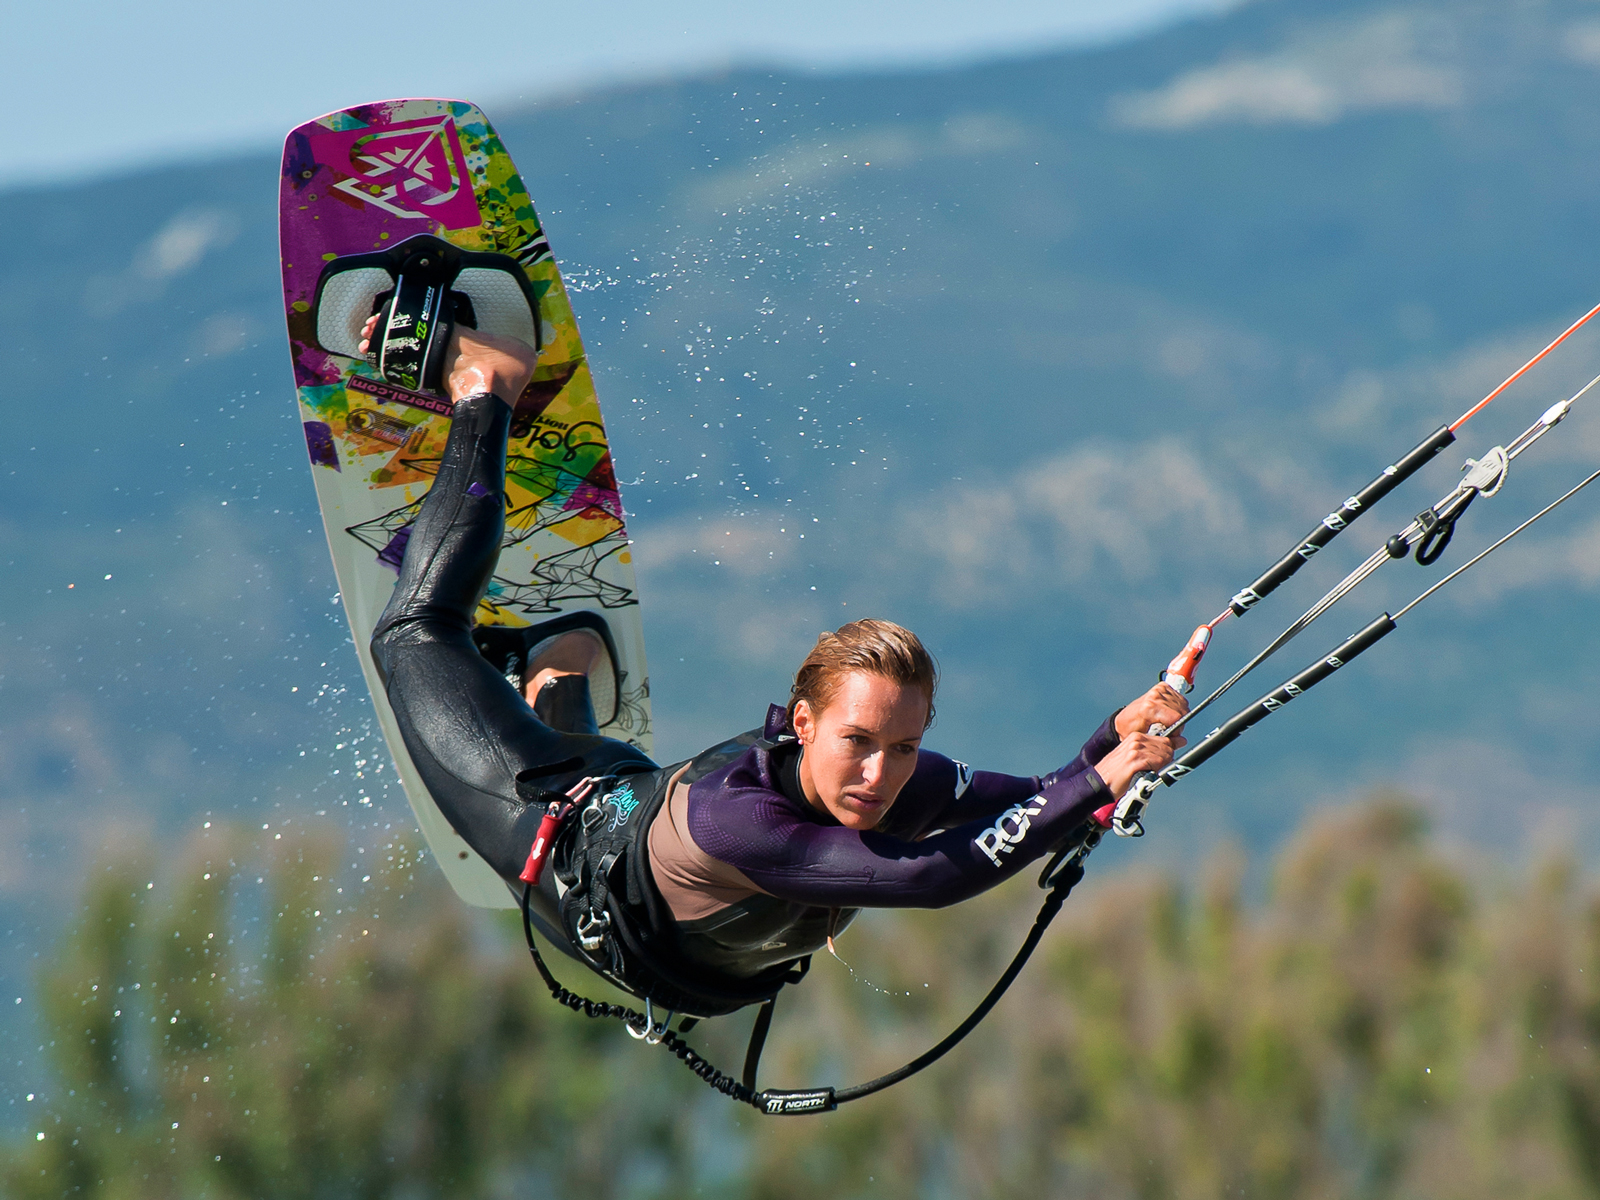 kitesurf wallpaper image - Angela Peral raily into town - in resolution: Standard 4:3 1600 X 1200